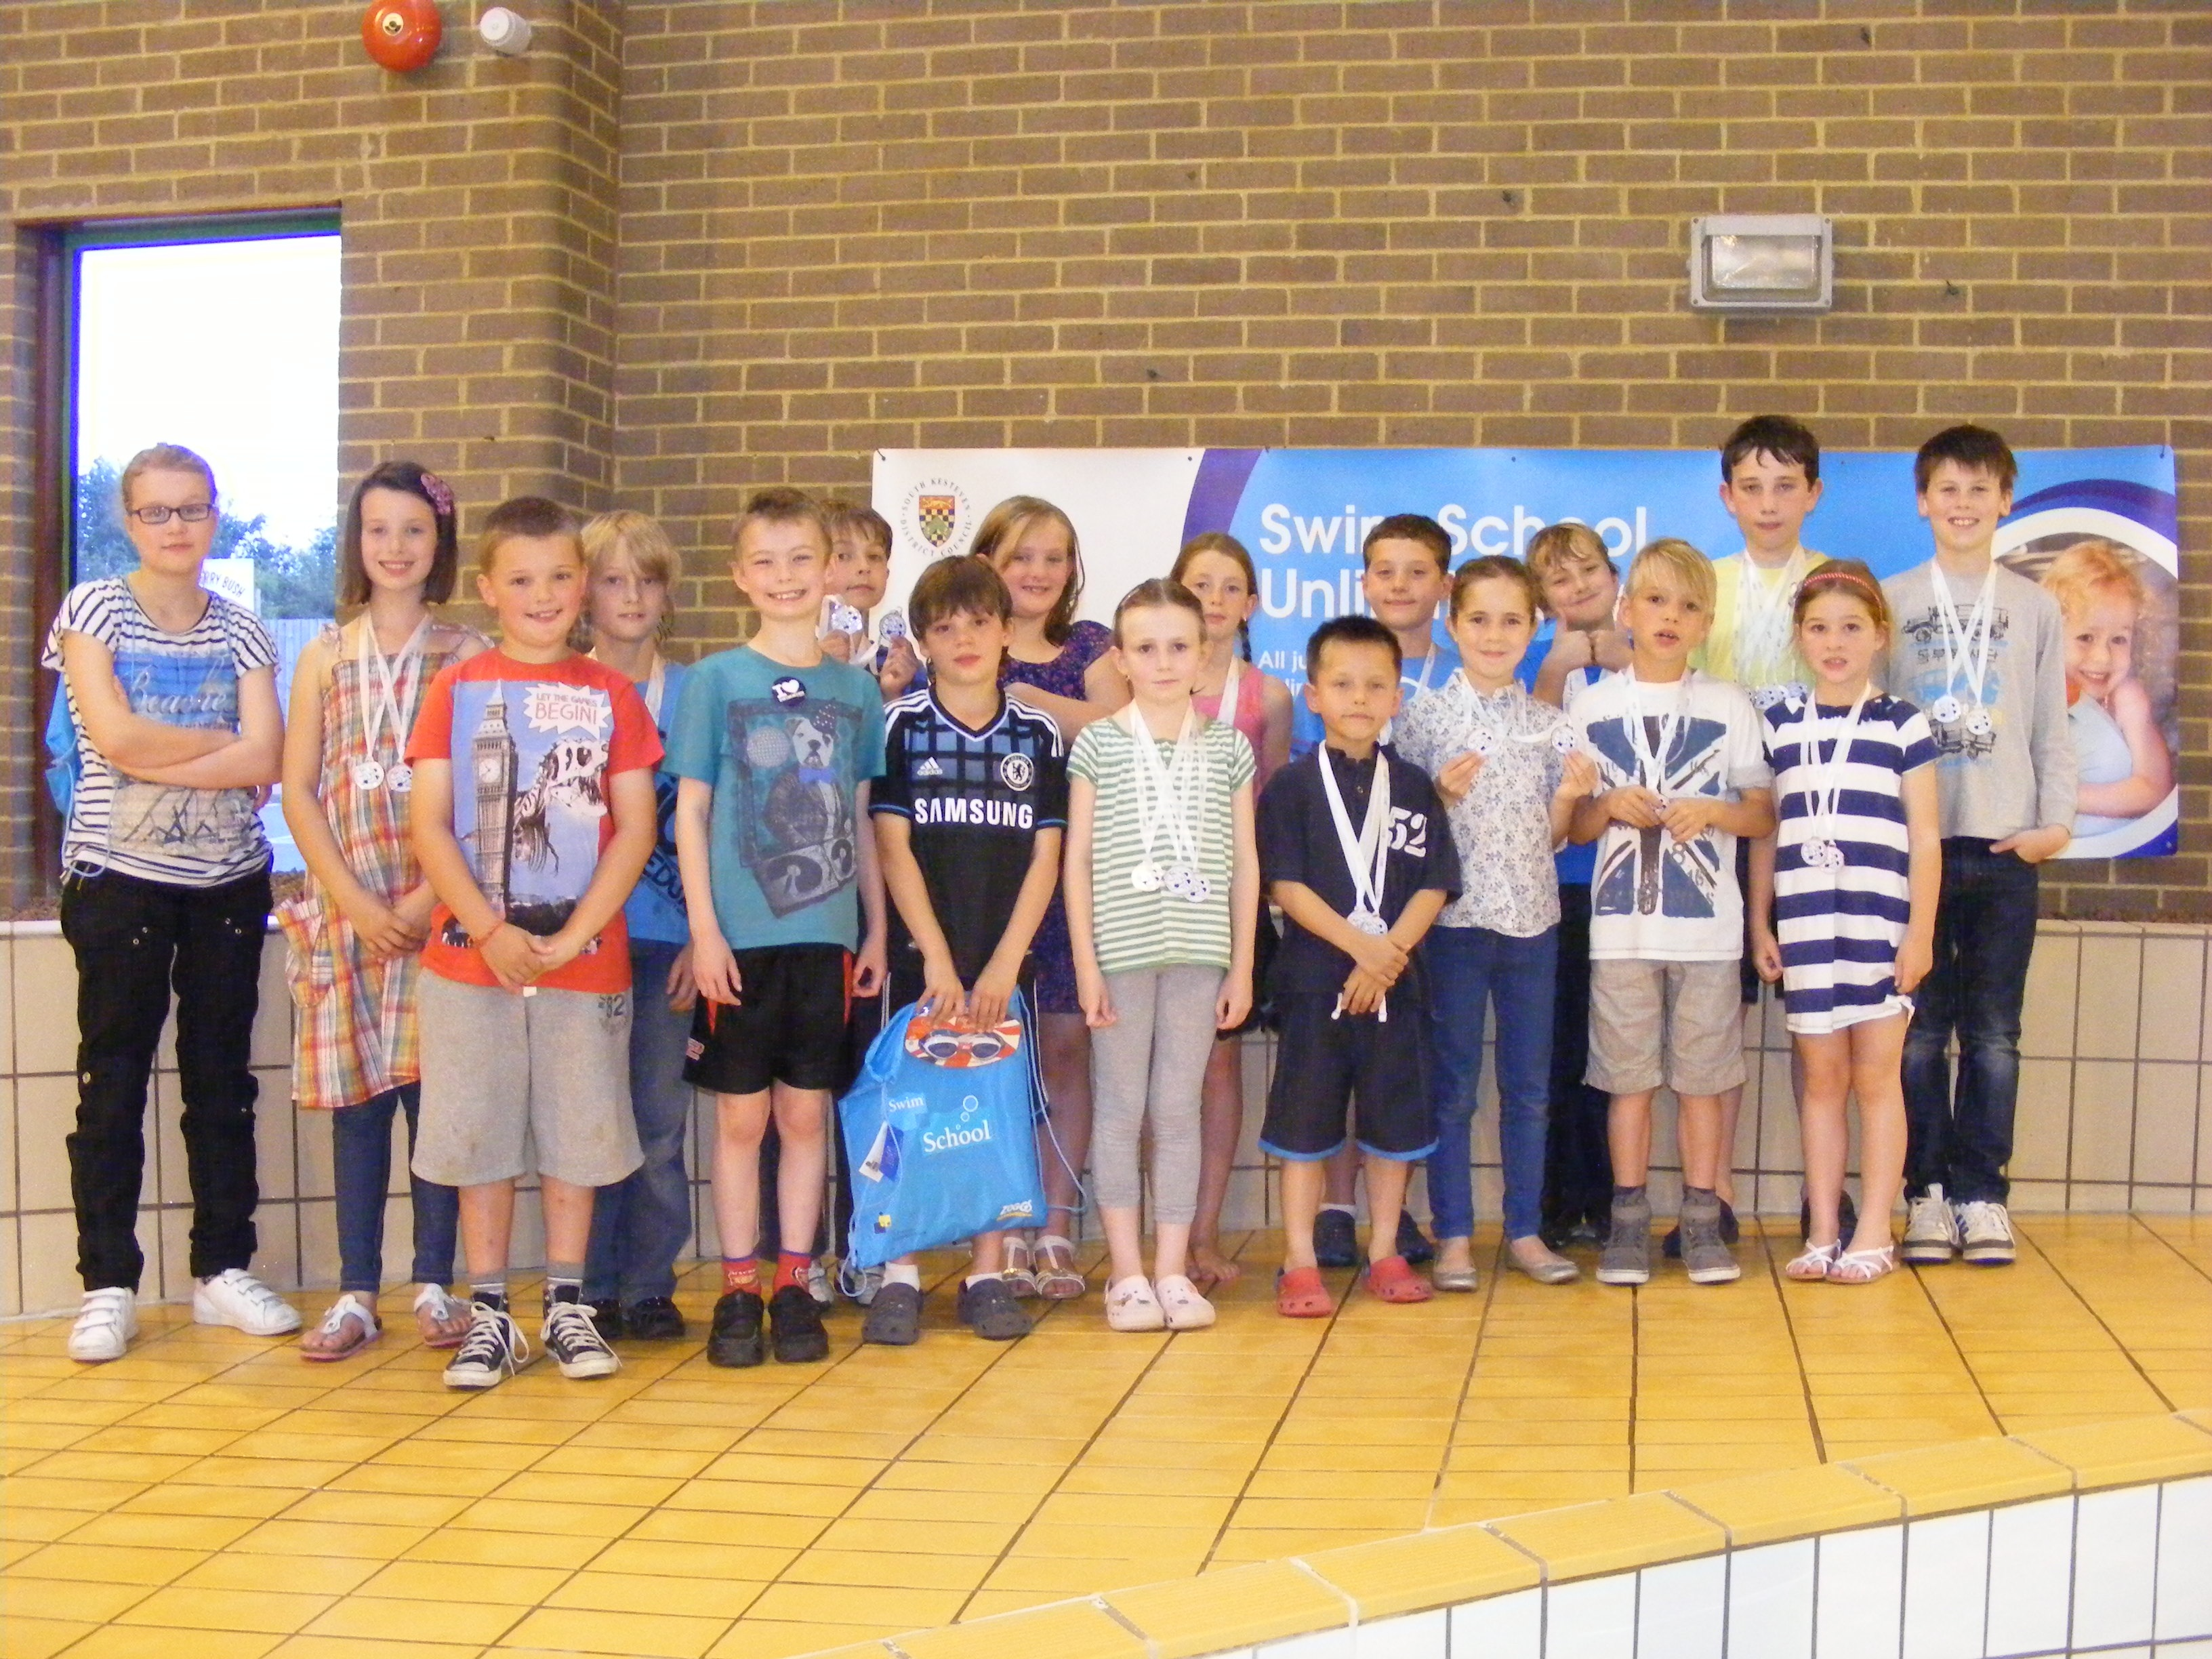 Medals were awarded for first, second and third place, as well as everyone receiving a reward for taking part